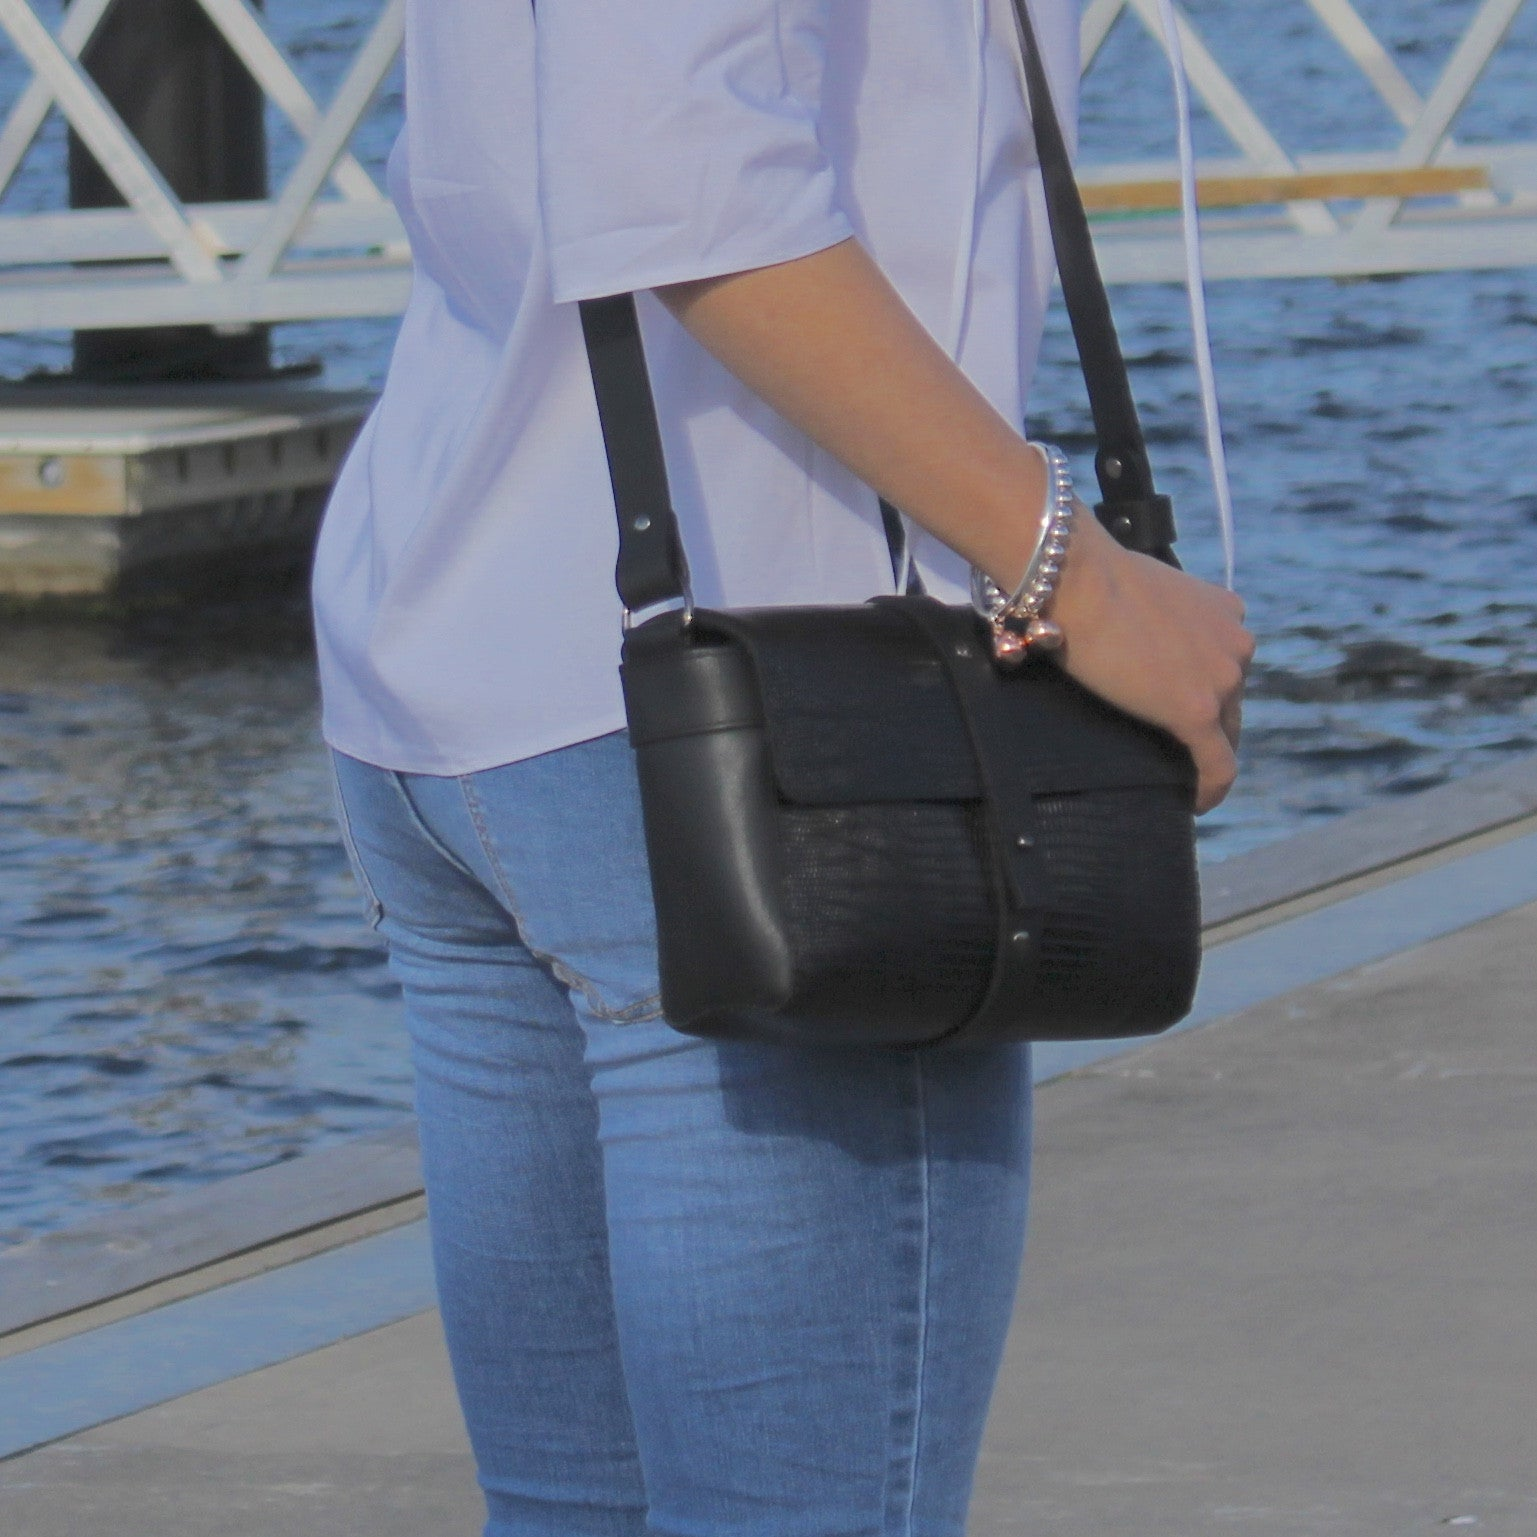 Sophia Boxy Satchel in Black Snake Leather by Convict